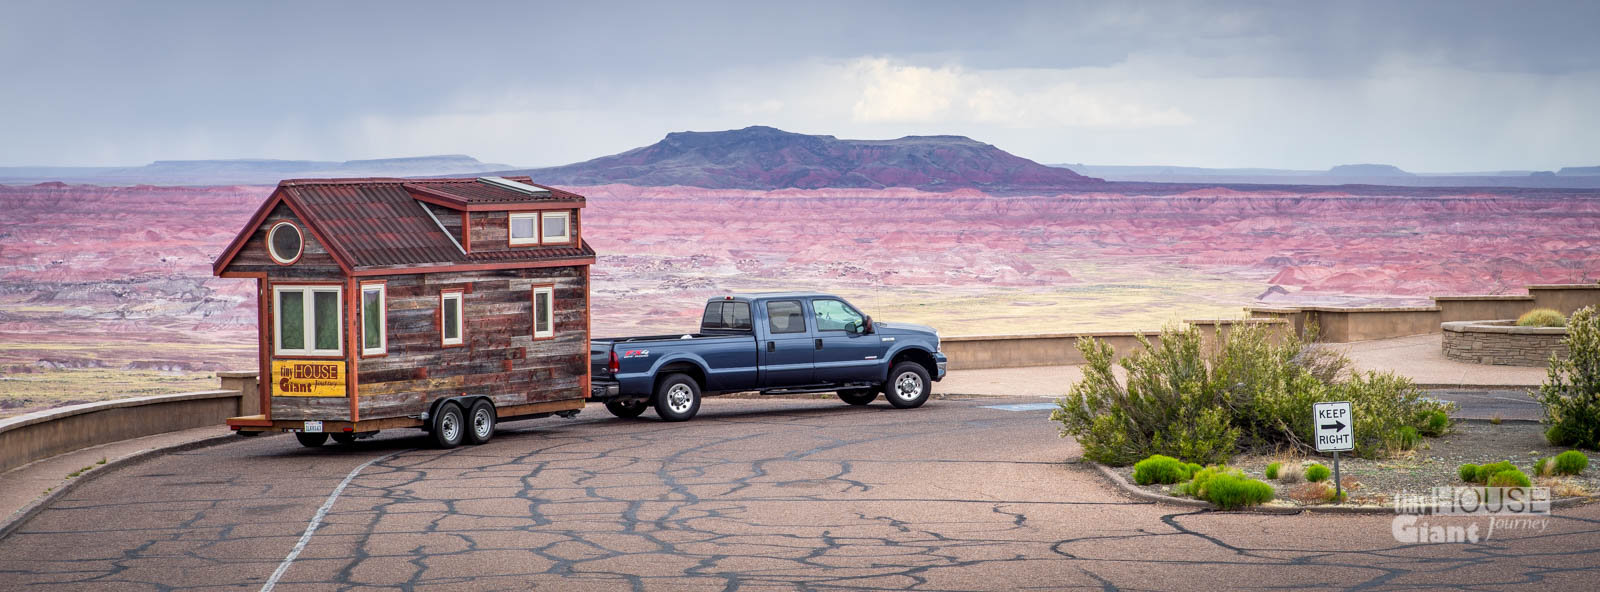 Tiny House Painted Desert